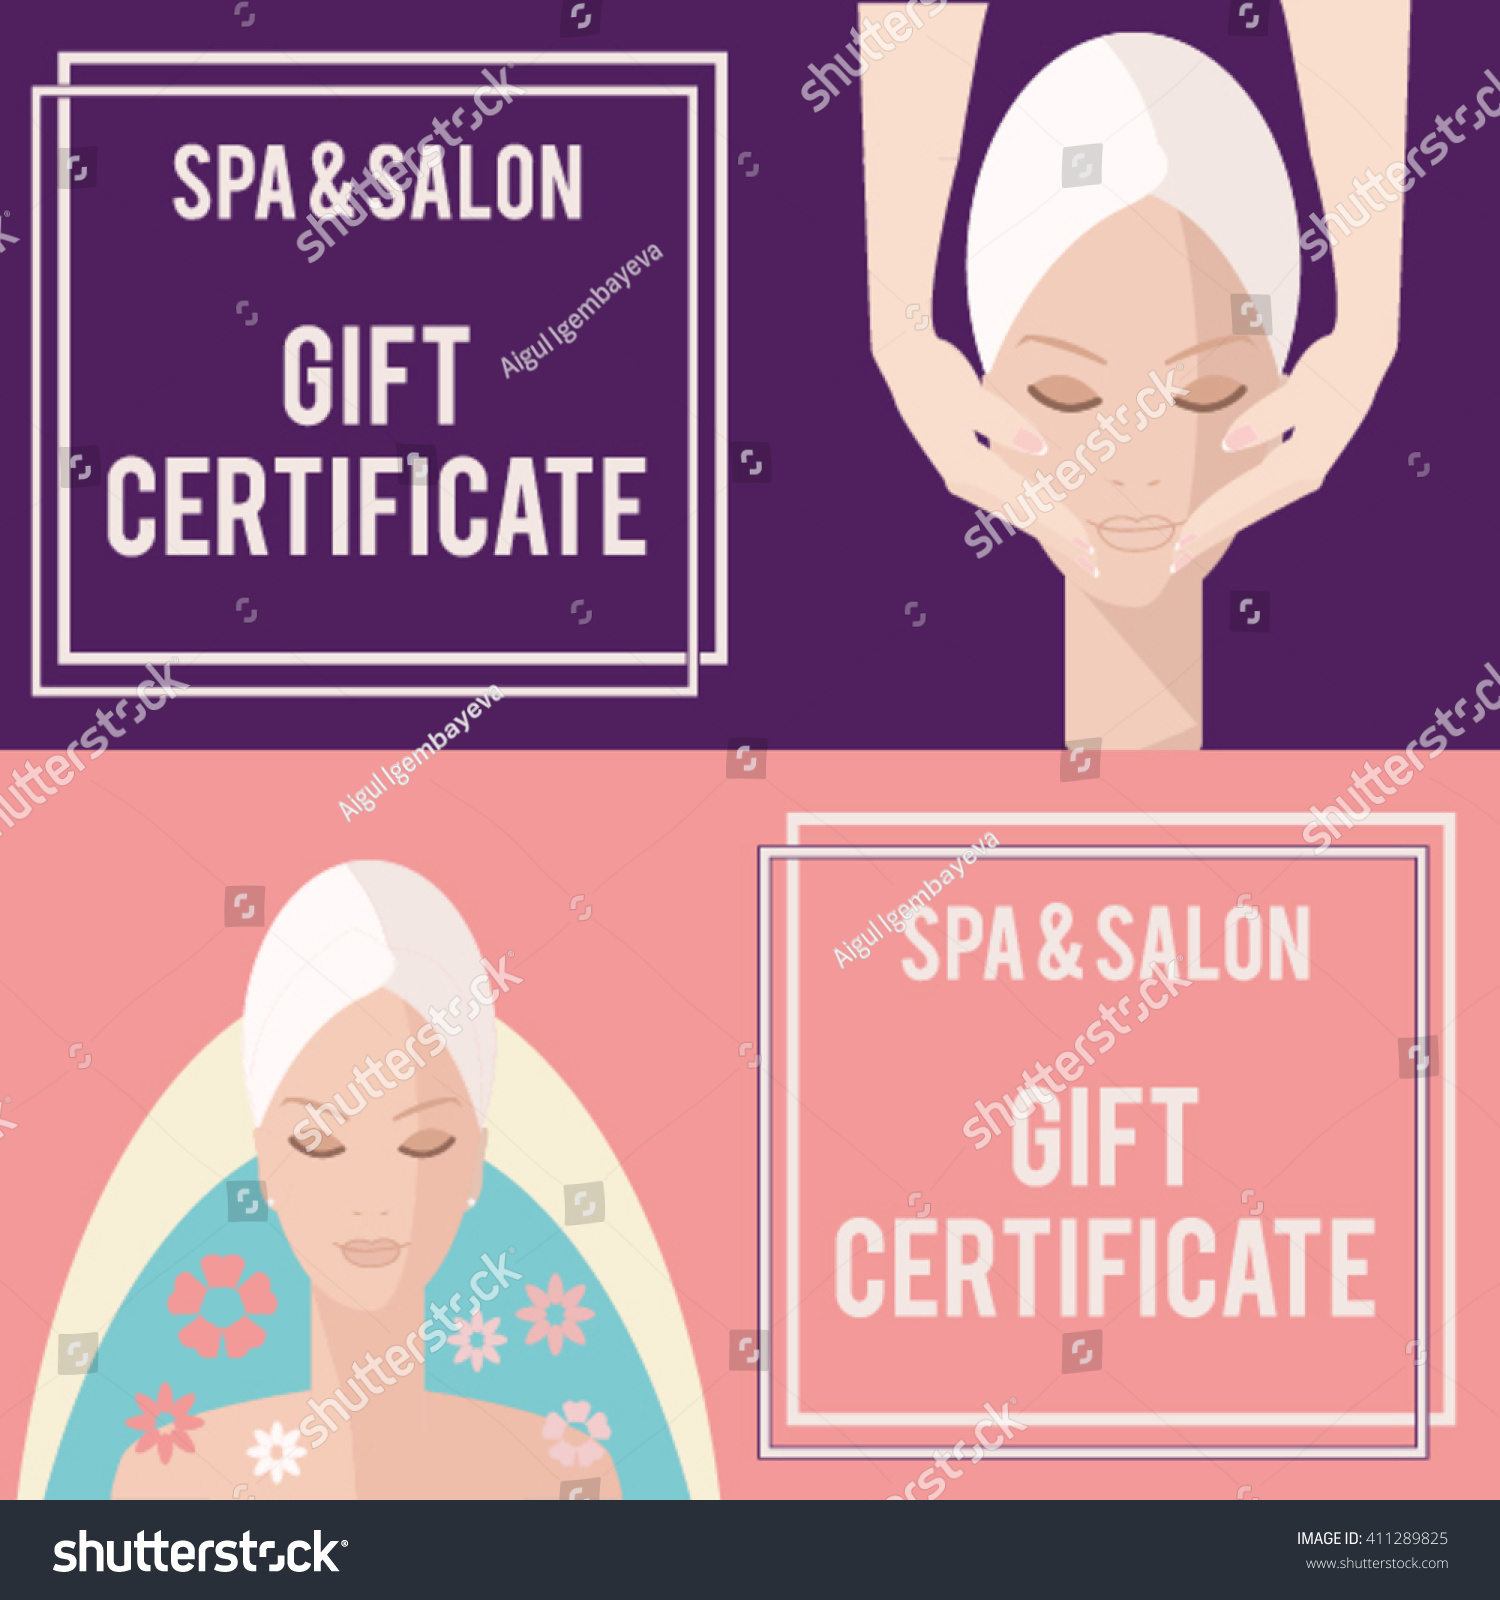 Spa salon gift certificate gift certificate stock vector 411289825 spa salon gift certificate gift certificate for spa and salonface massage banner xflitez Images